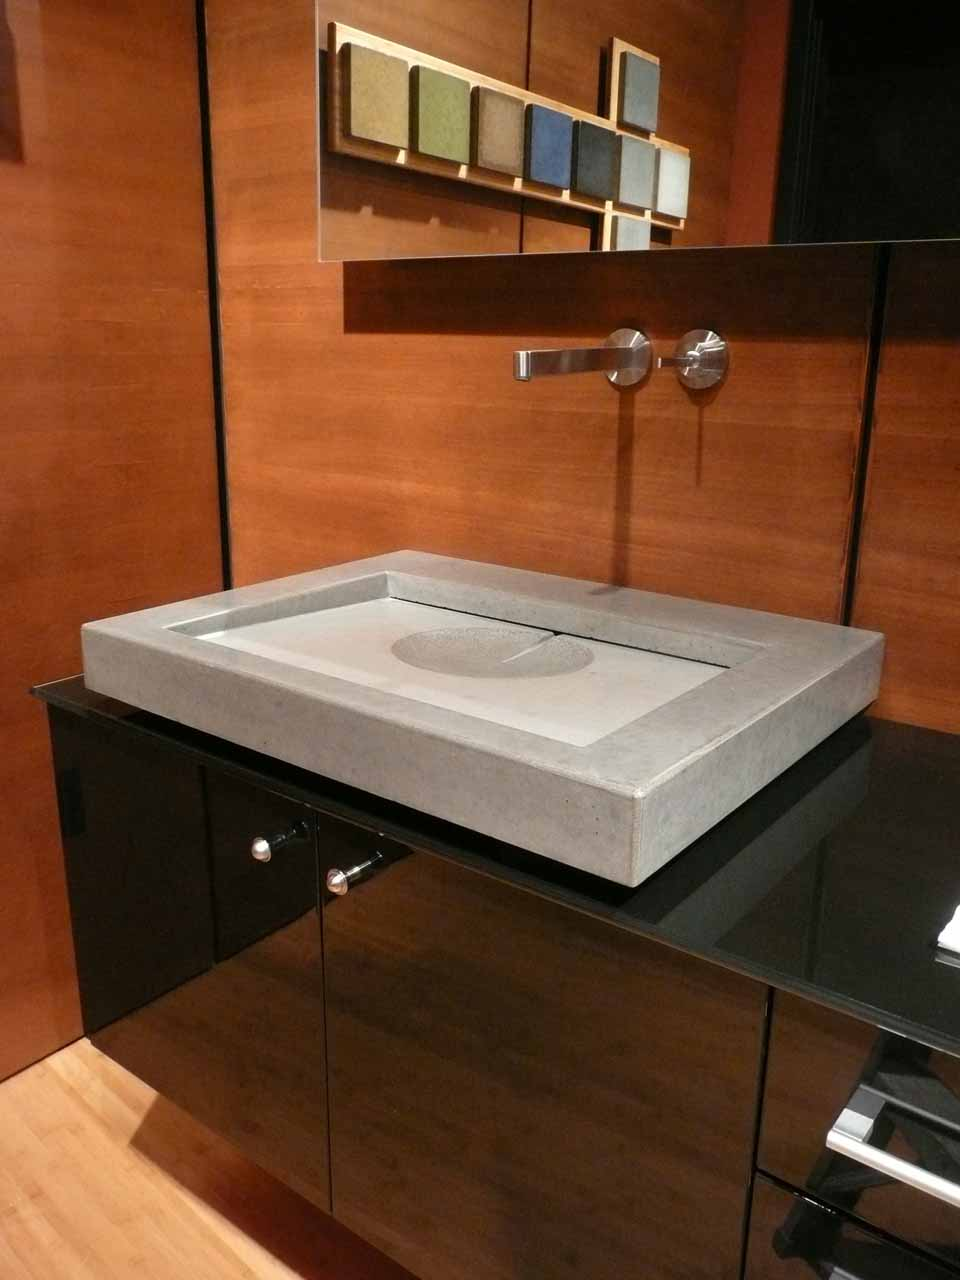 Picture of Bathroom Sink - Notebook Bowl Vessel